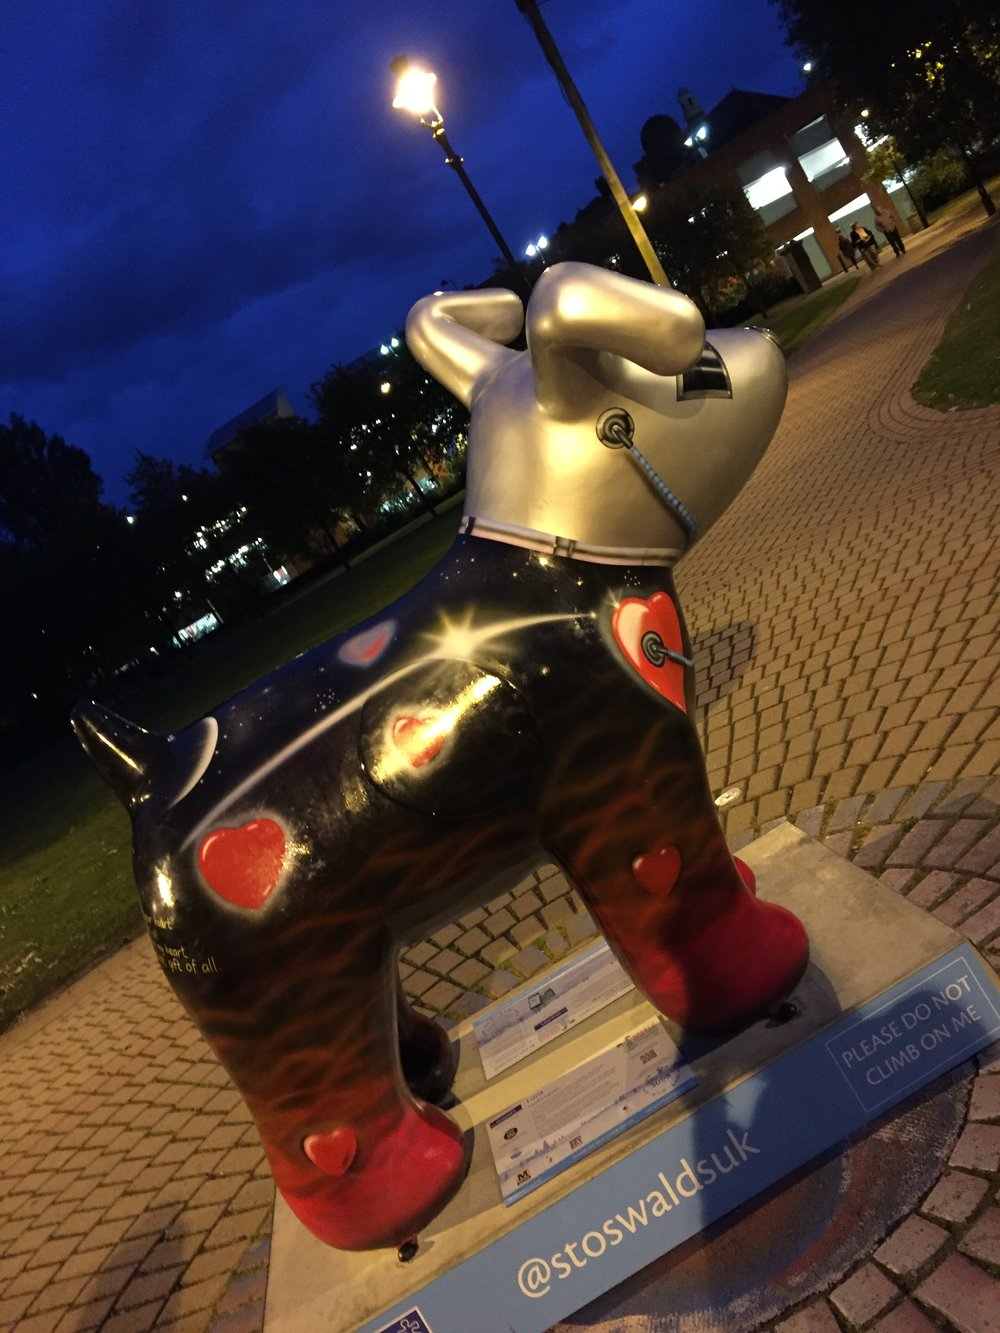 luna_sunderland_the_great_north_snowdog_st_oswalds_hospice_ringtons_tea_elle_blonde_luxury_lifestyle_blog.jpg